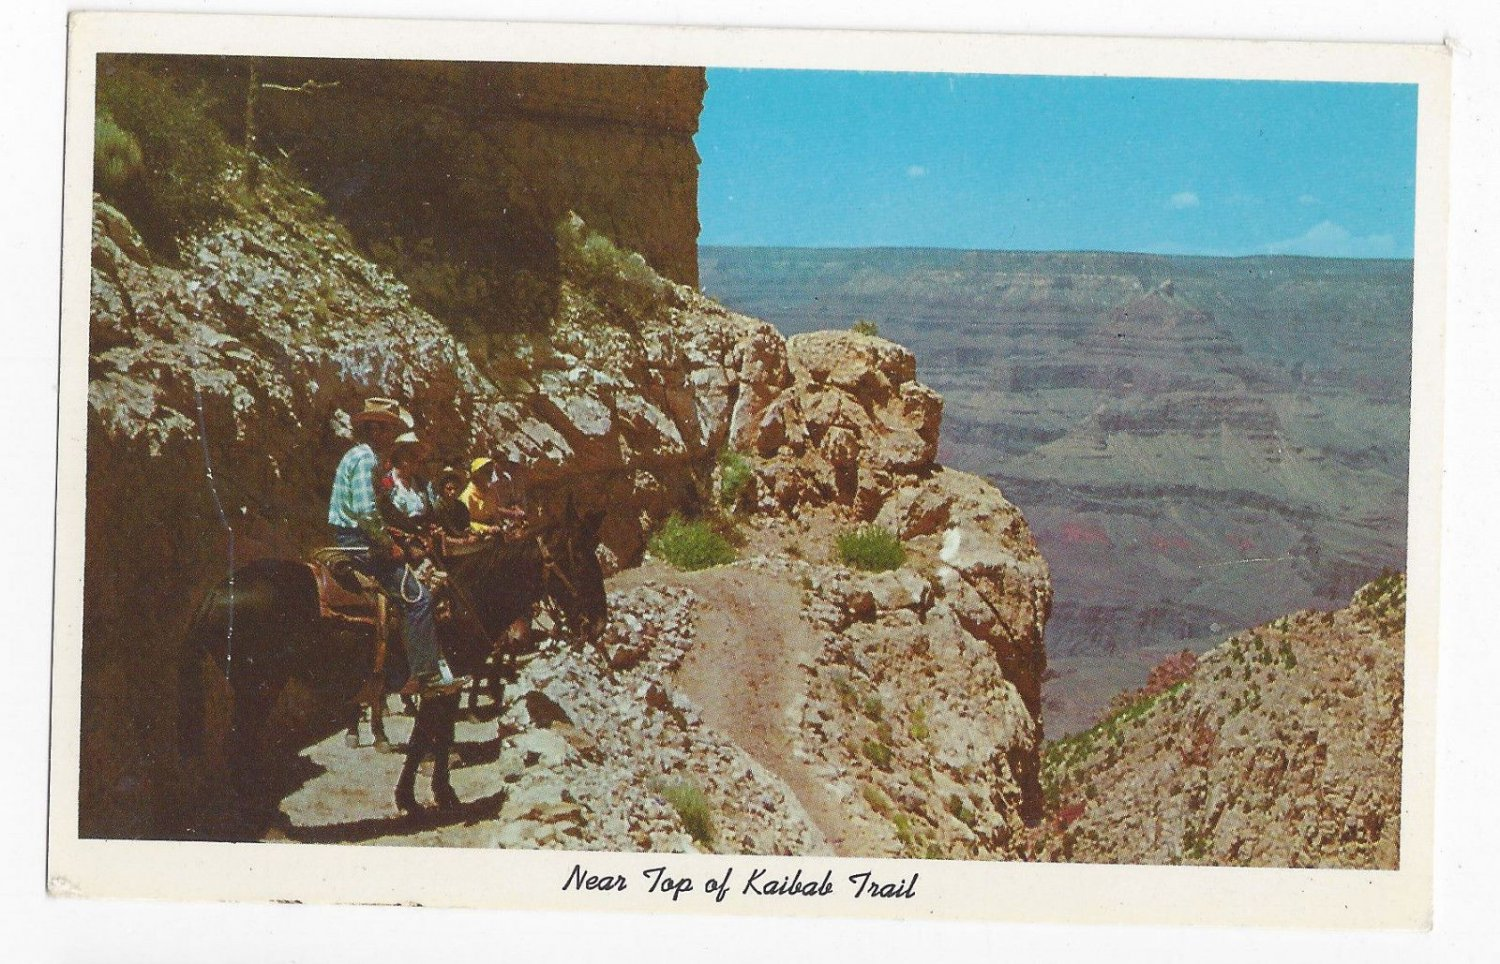 AZ Grand Canyon National Park Kaibab Trail Vintage Fred Harvey Postcard